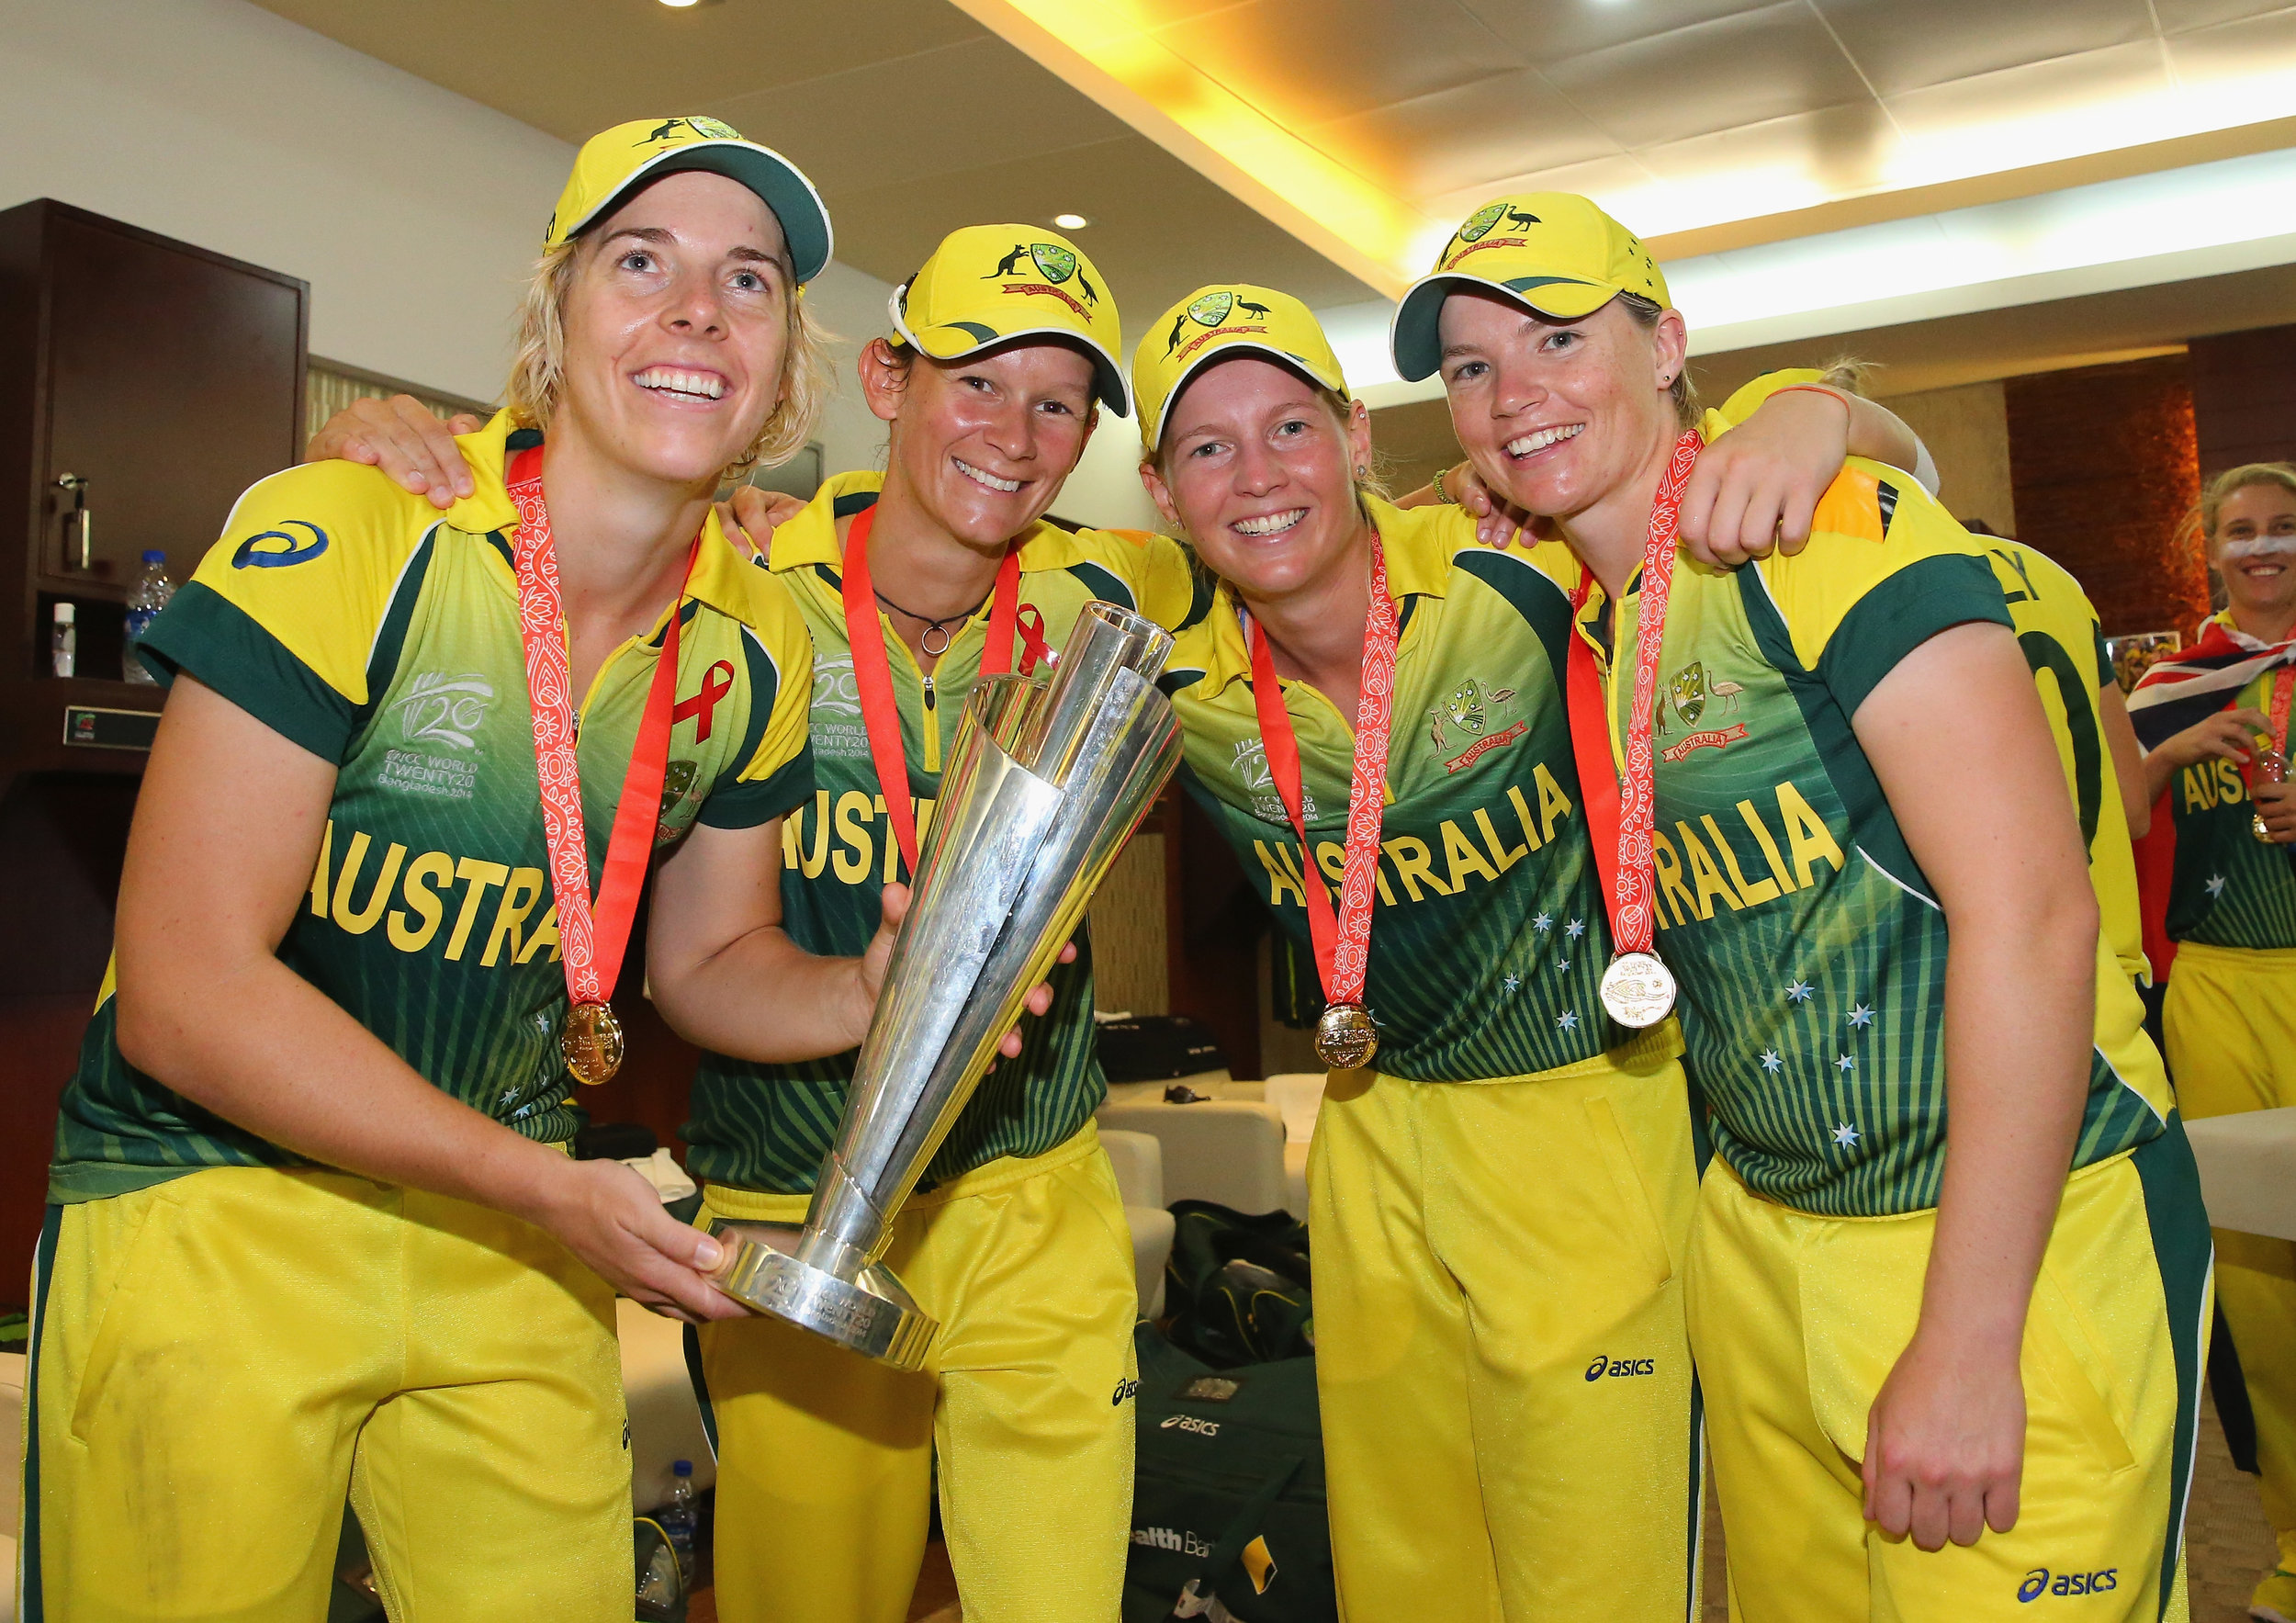 Elyse Villani, Julie Hunter, Meg Lanning and Jess Cameron pose with the trophy in the changing rooms after winning the the ICC Women's World Twenty20 final against England in 2014